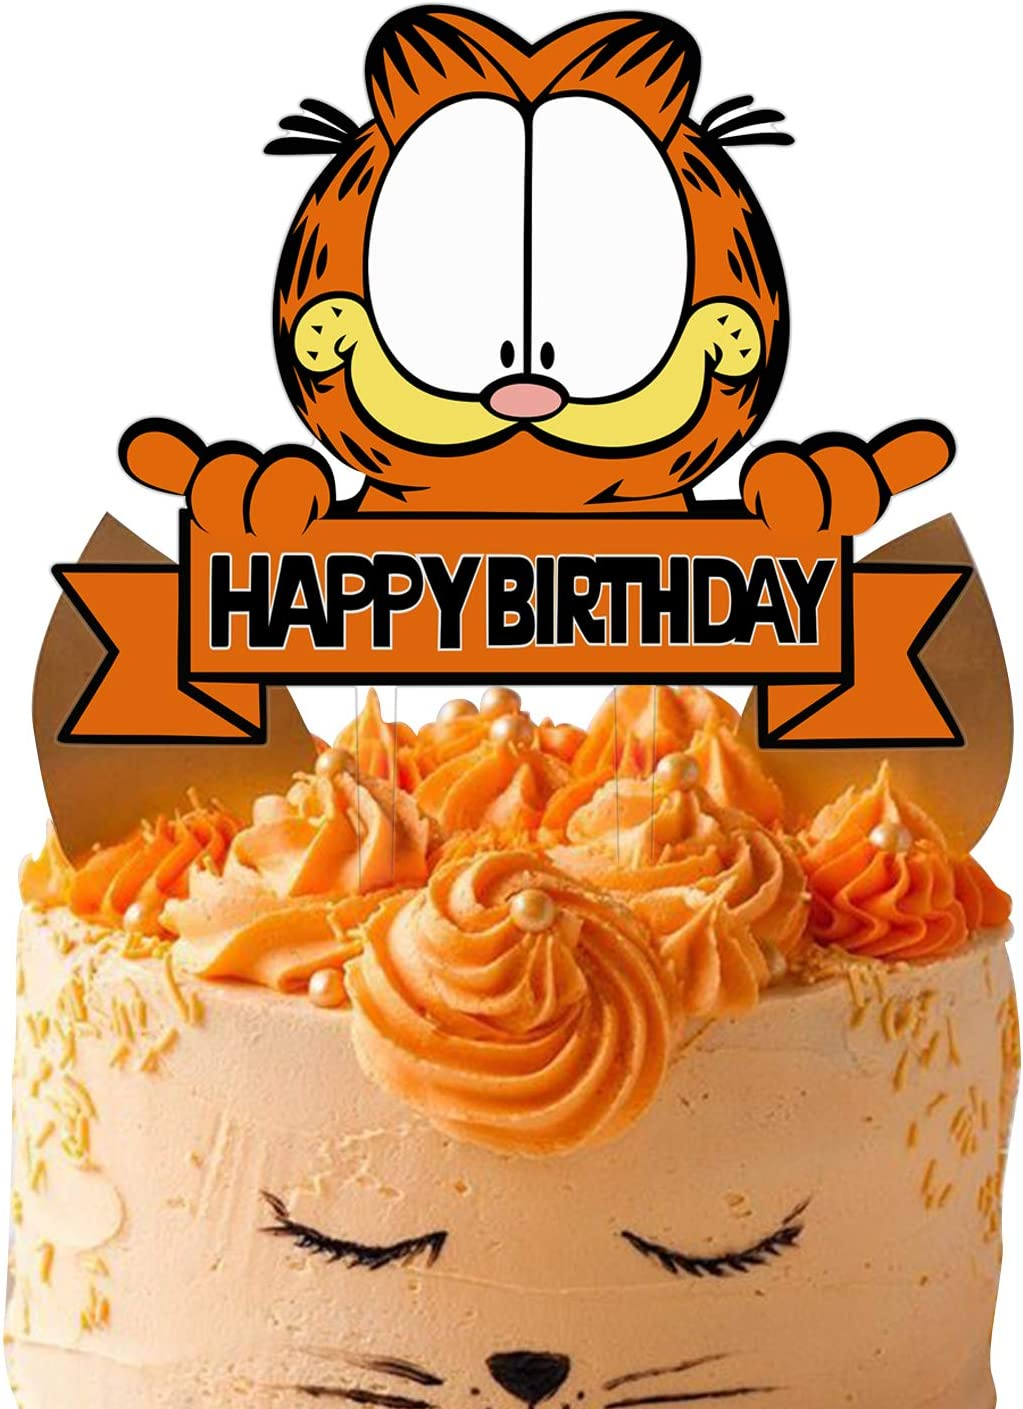 Acrylic Garfield Happy Birthday Cake Toppers, Garfield Cake Decor Garfield Theme Birthday Party Baby Shower Decoration Supplies, Kids Bday Party Favor